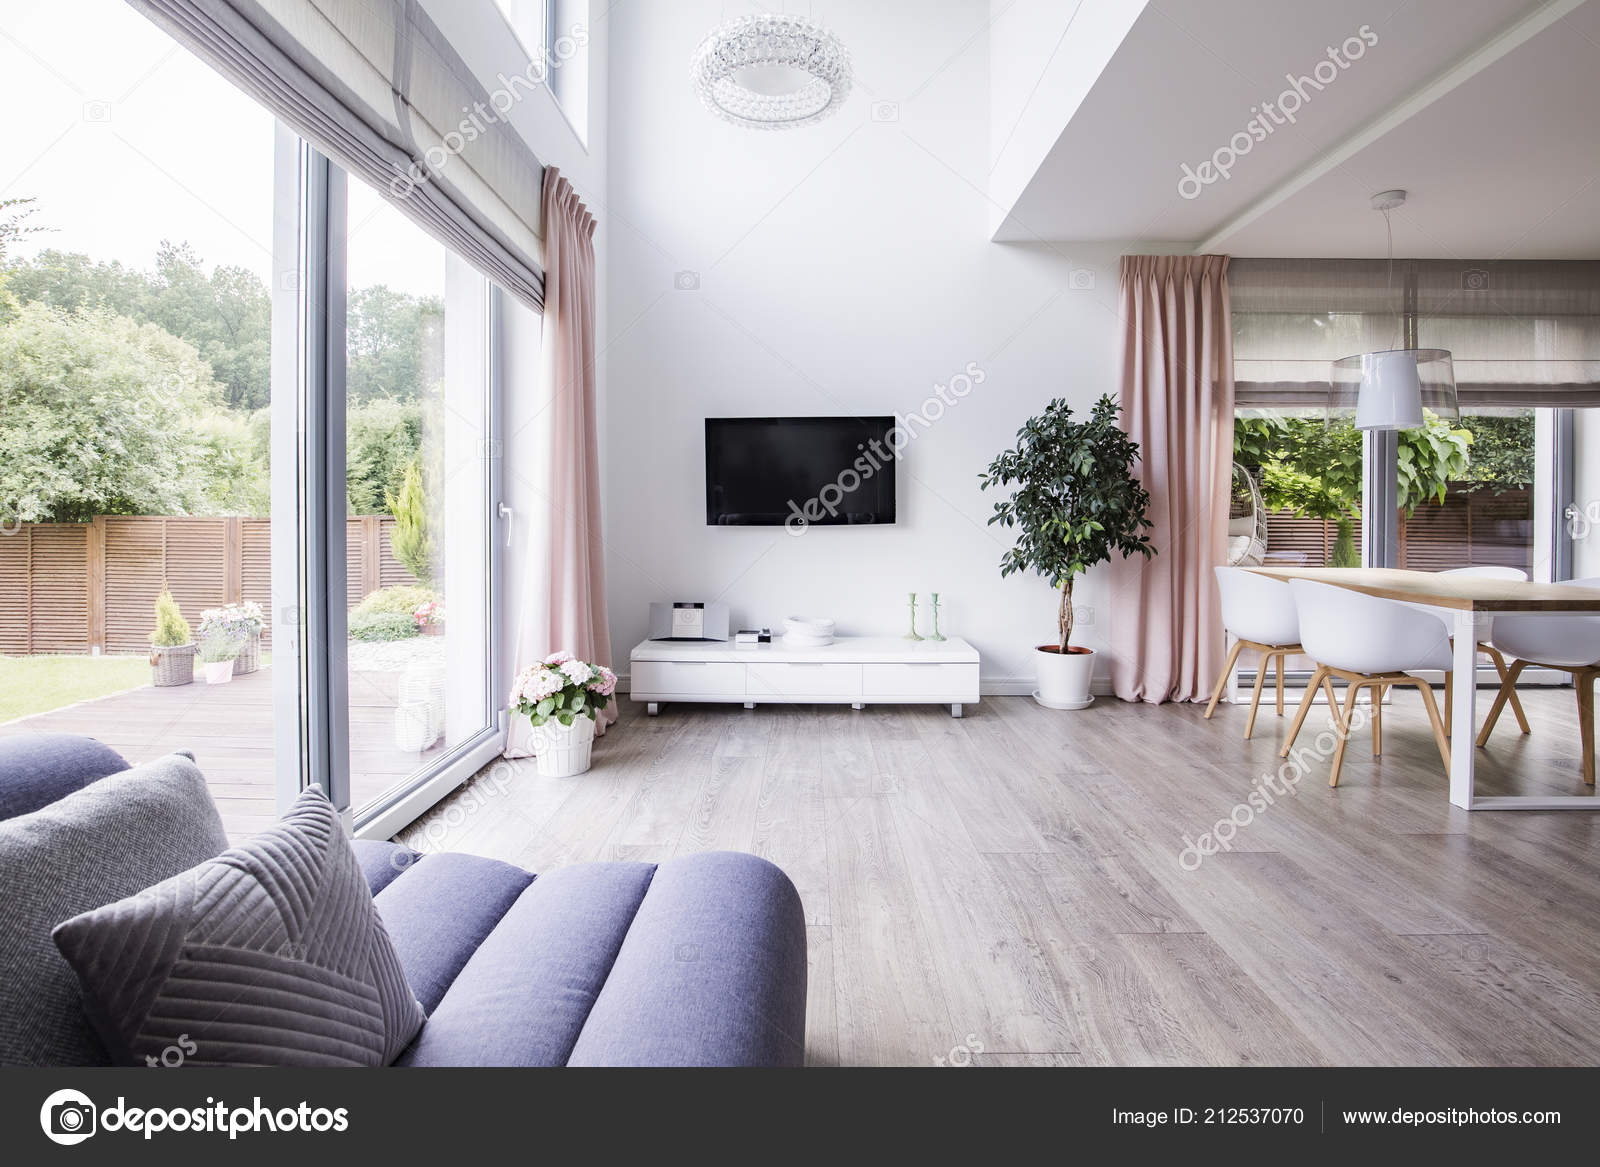 Spacious Living Room Interior Cropped Sofa Cabinet Window Plant Dining Stock Photo Image By Photographee Eu 212537070